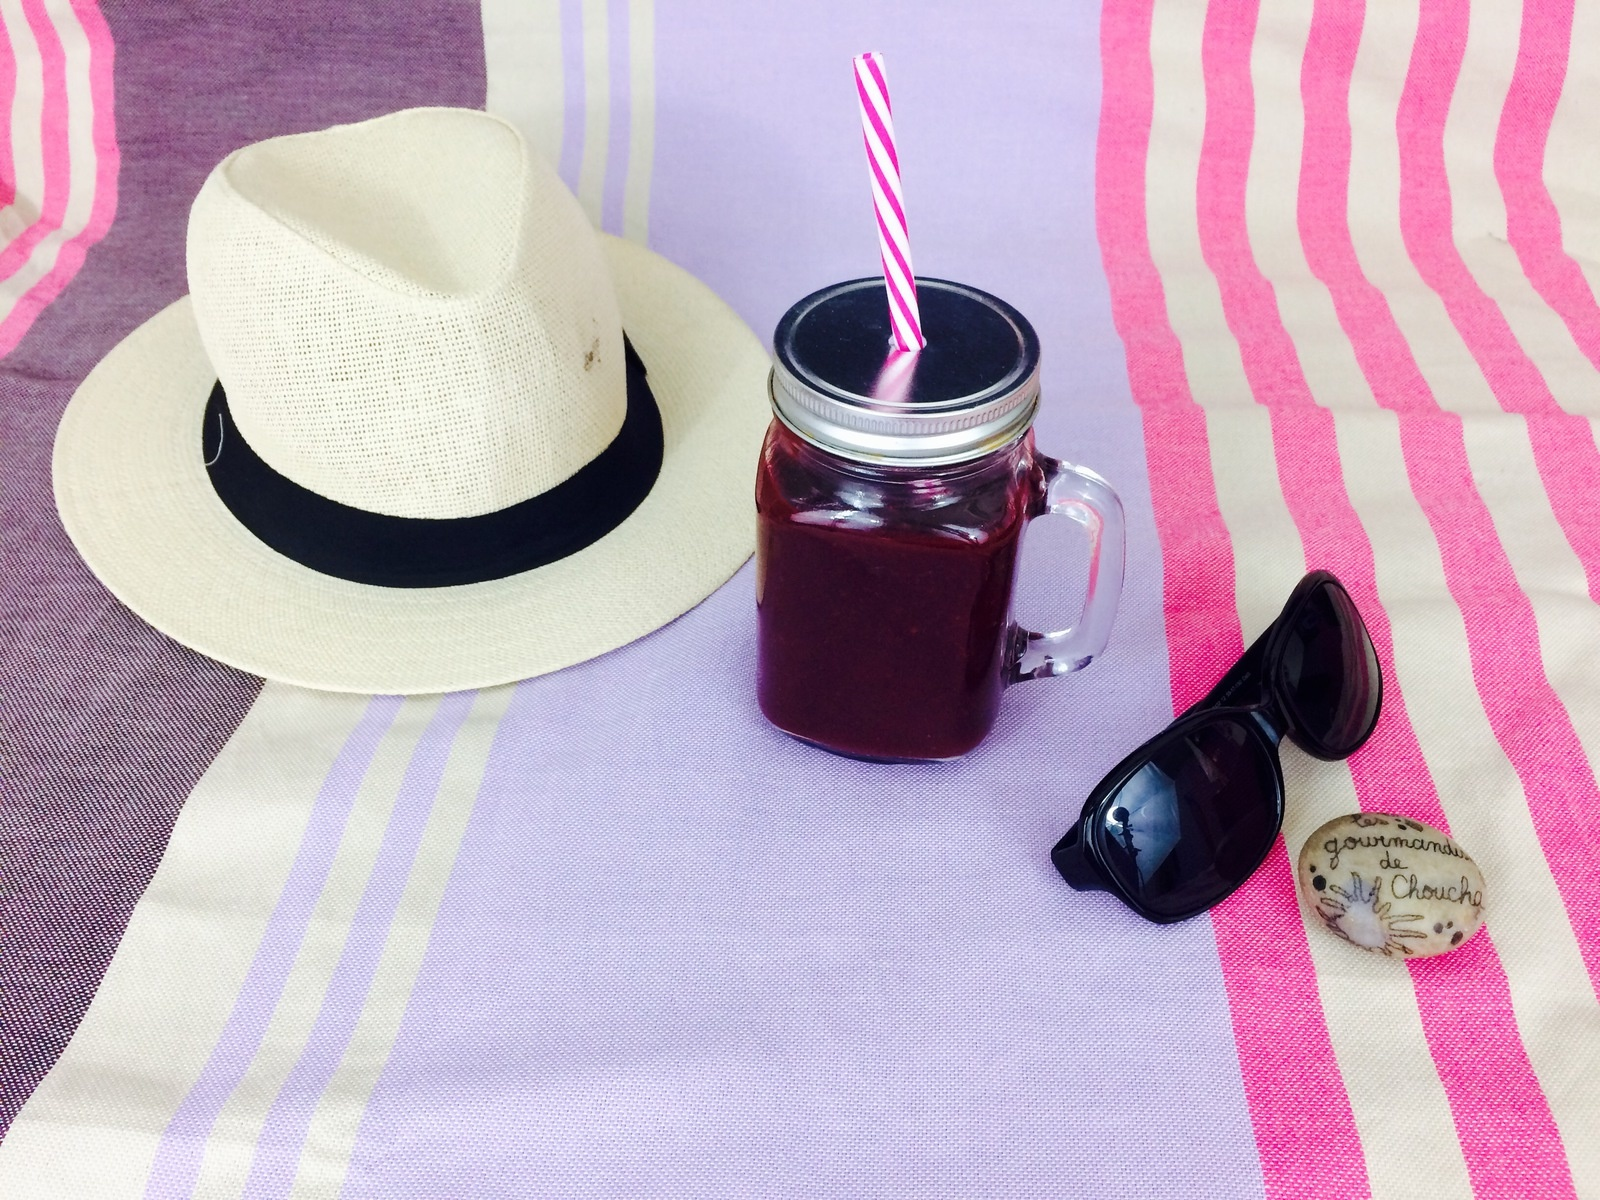 glass of energy blackcurrant smoothie with a hat and sunglasses lying beside